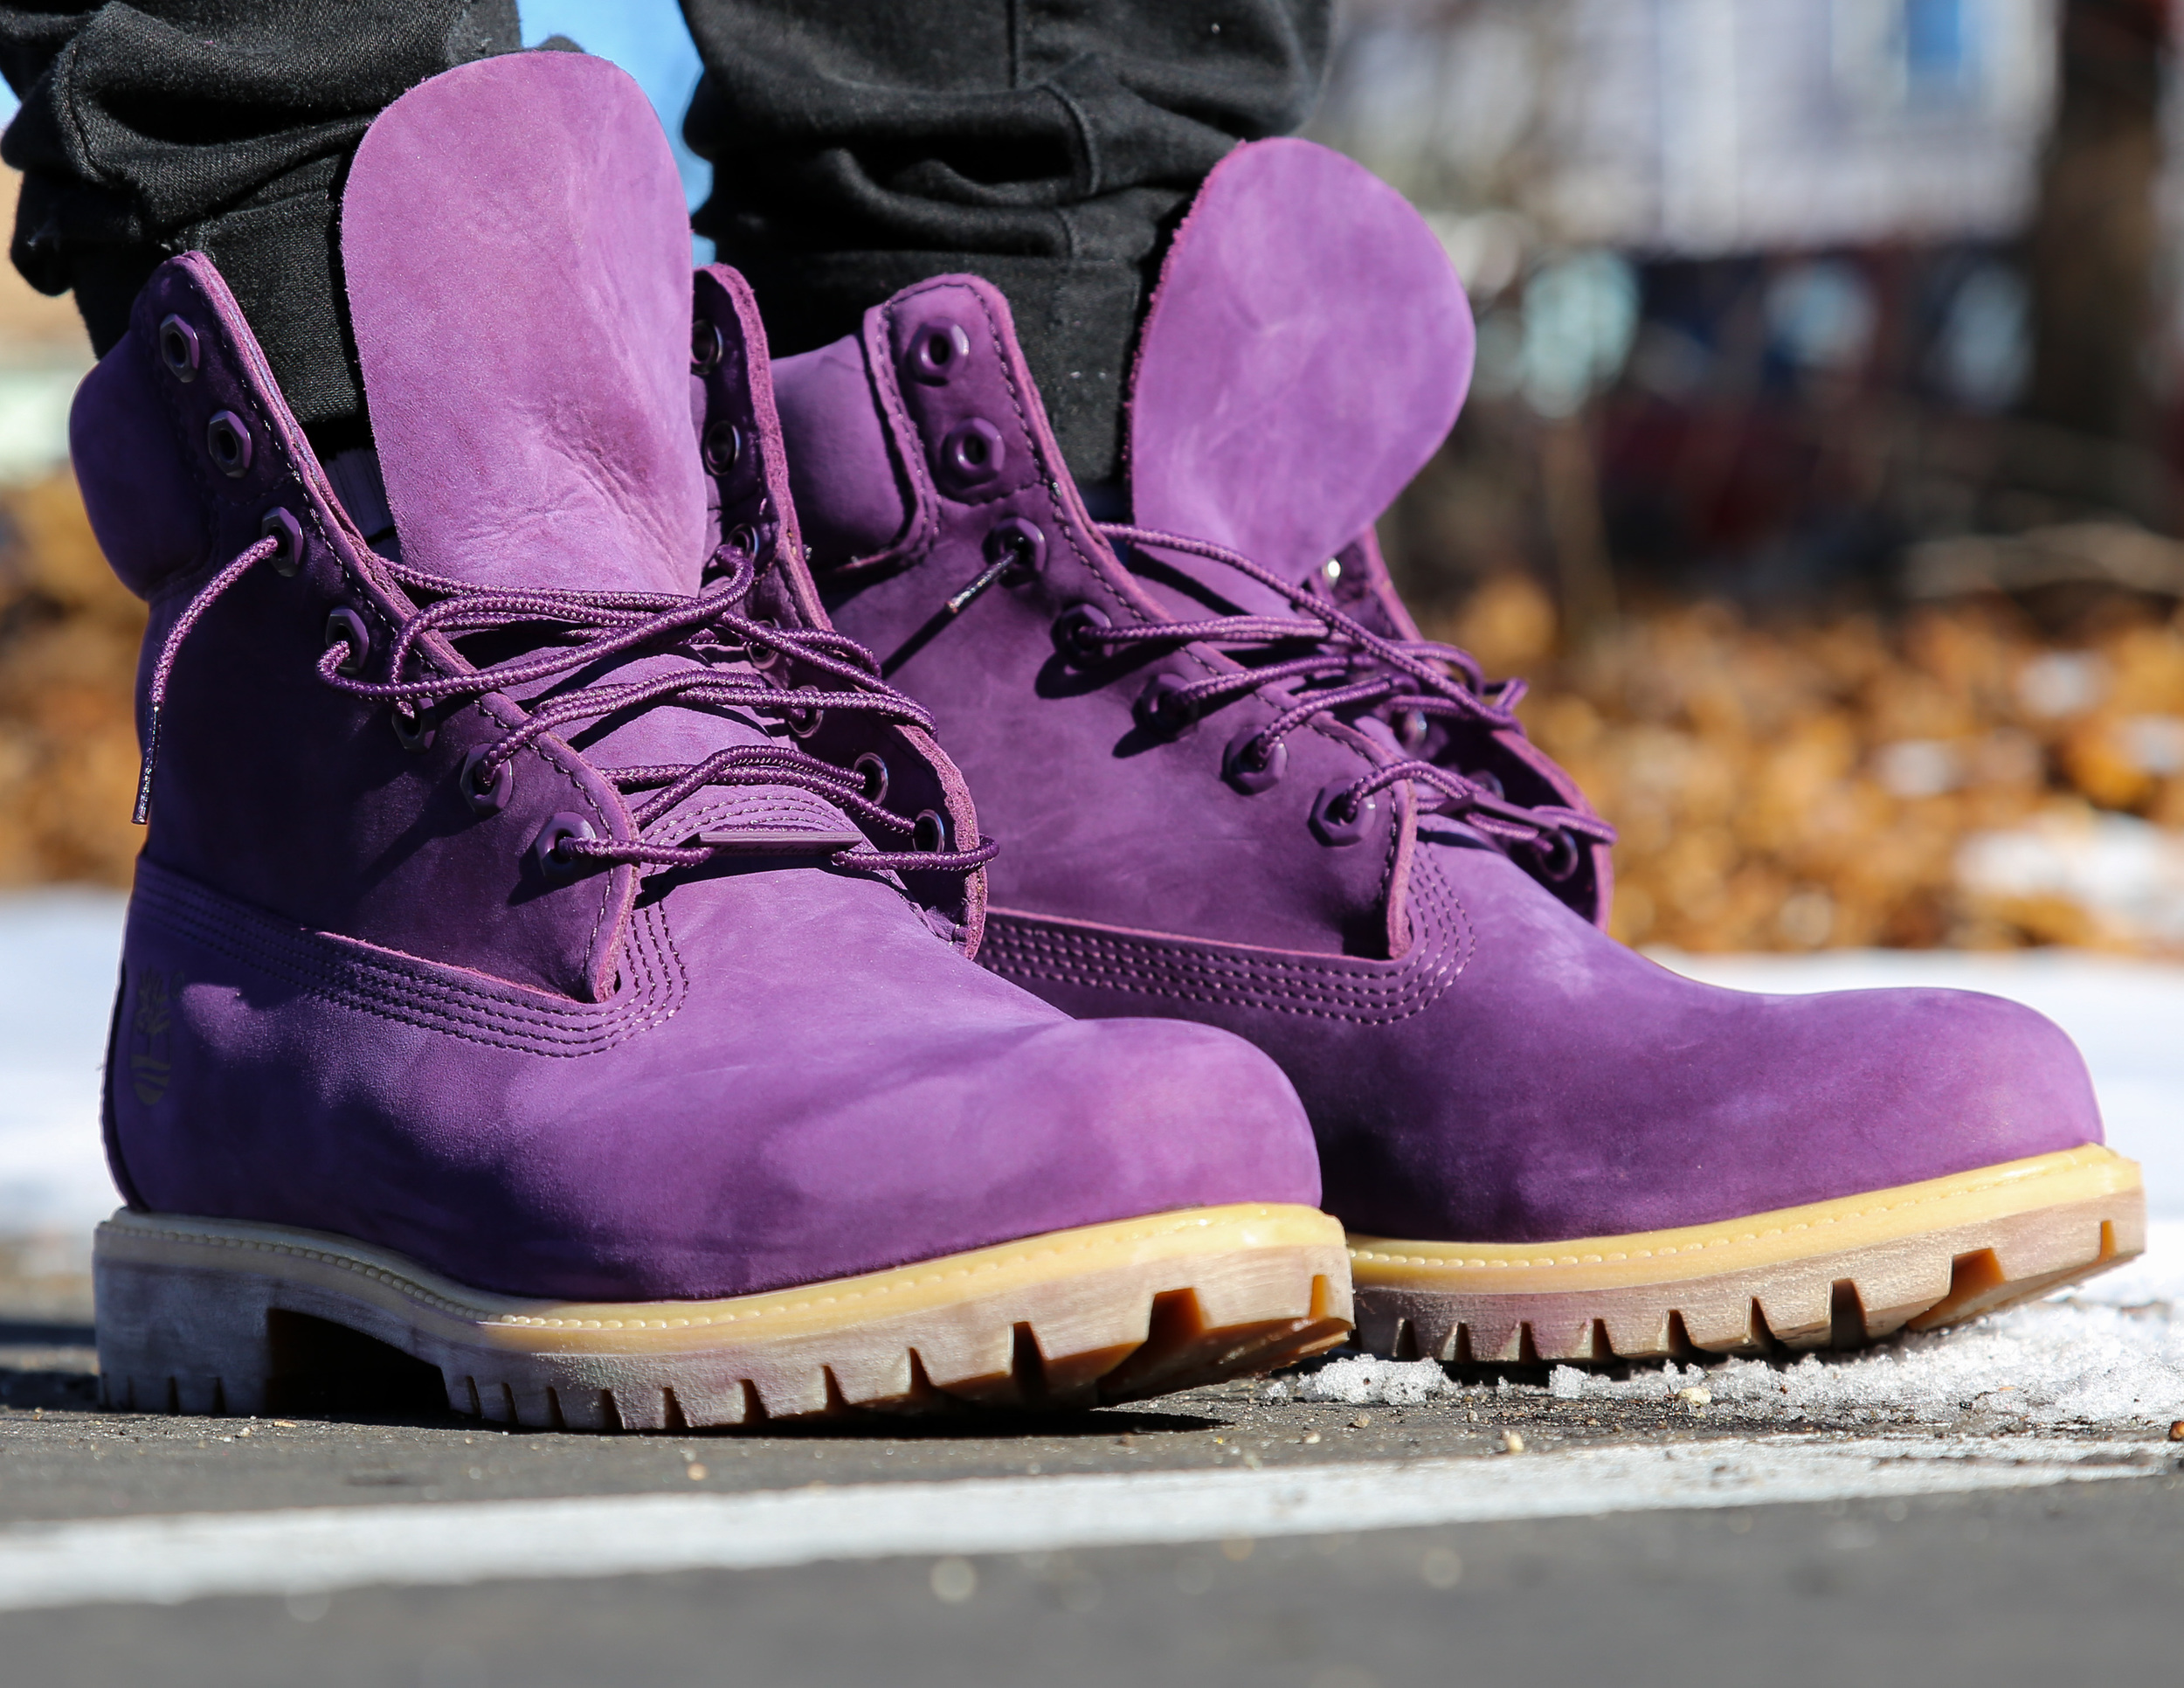 48ee41a27a1a Exclusive Look at the Villa x Timberland 6